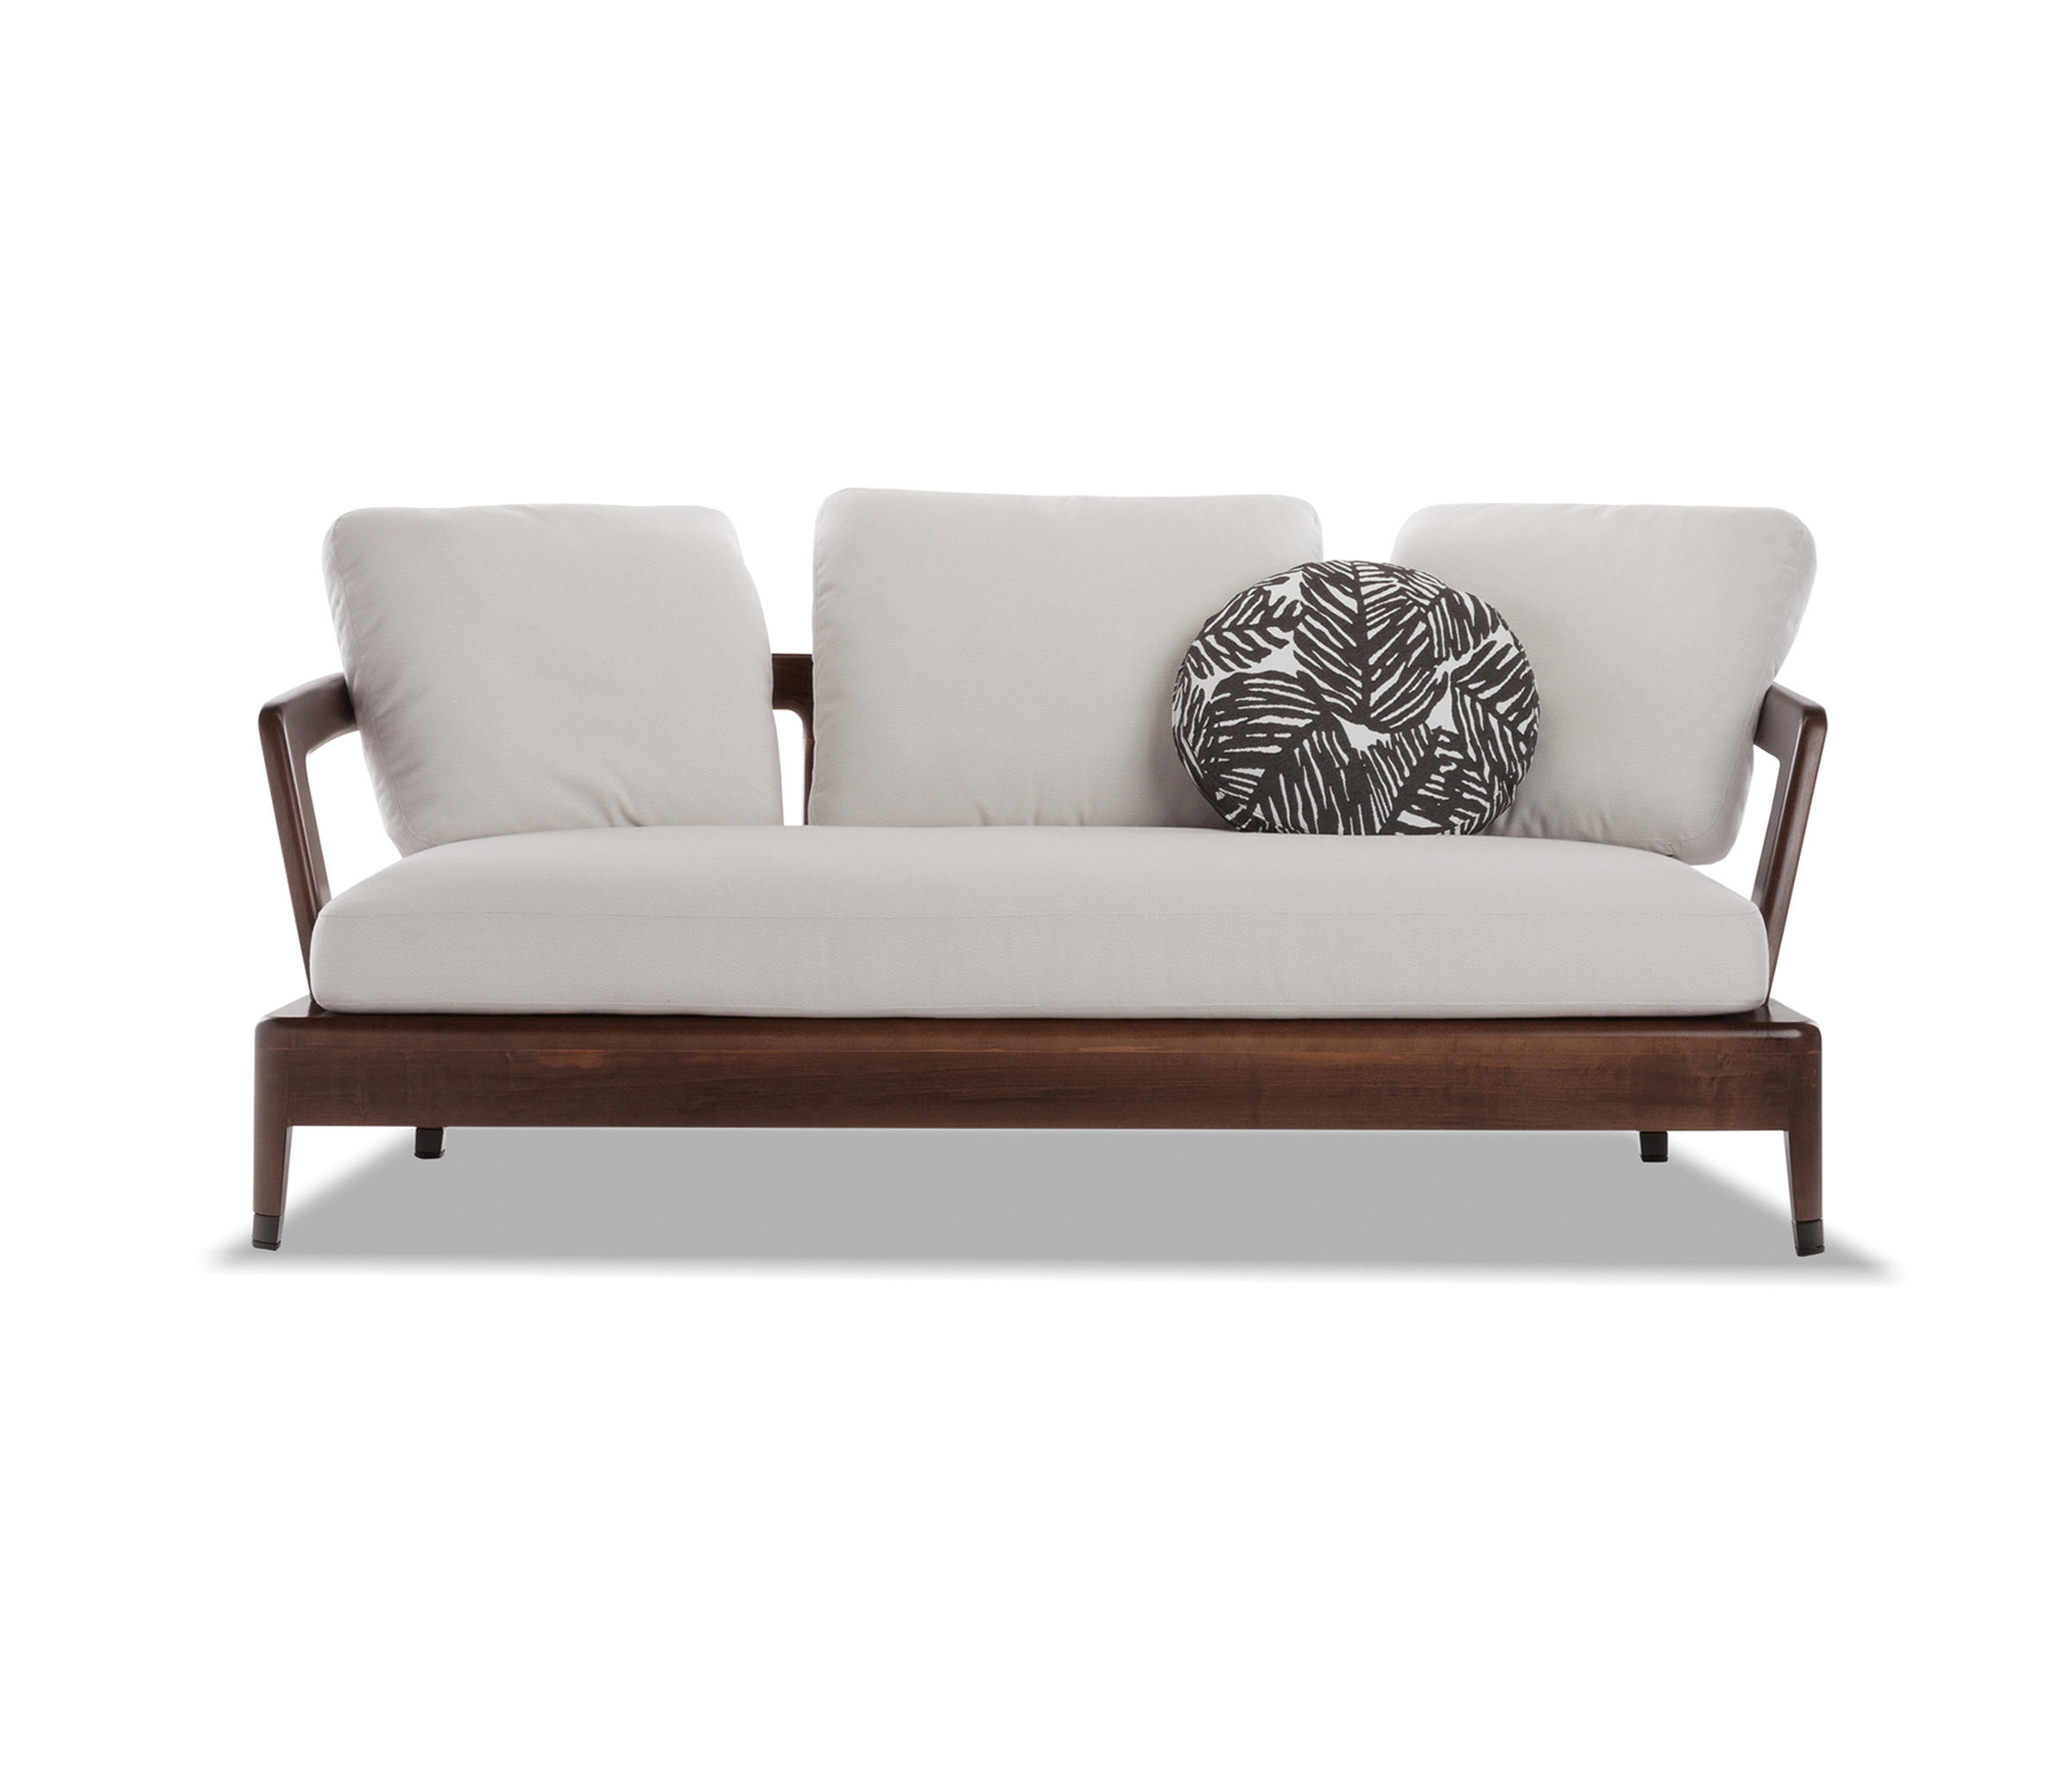 Virginia outdoor sofa garden sofas from minotti architonic for Sofa outdoor